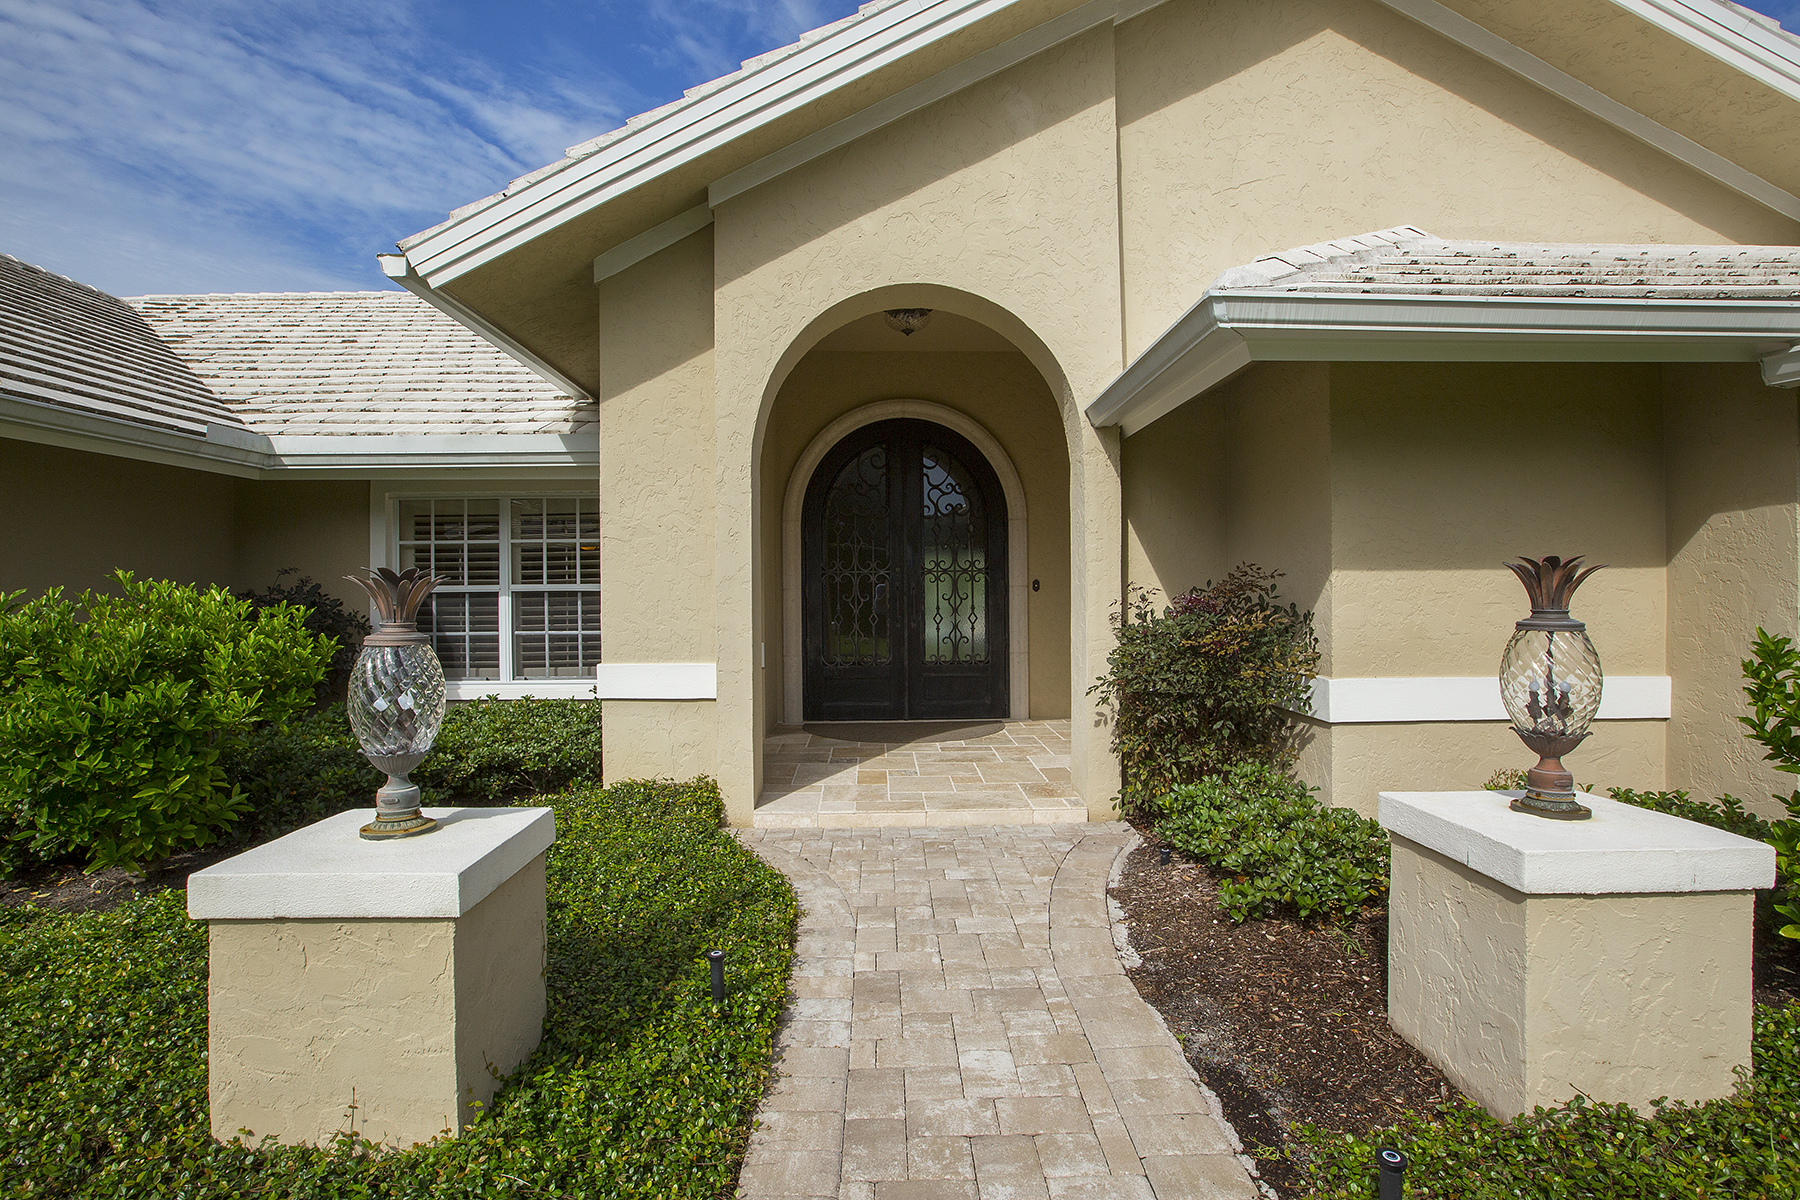 Single Family Home for Sale at PELICAN BAY-Pelican Bay Woods 6577 Ridgewood Dr, Naples, Florida 34108 United States